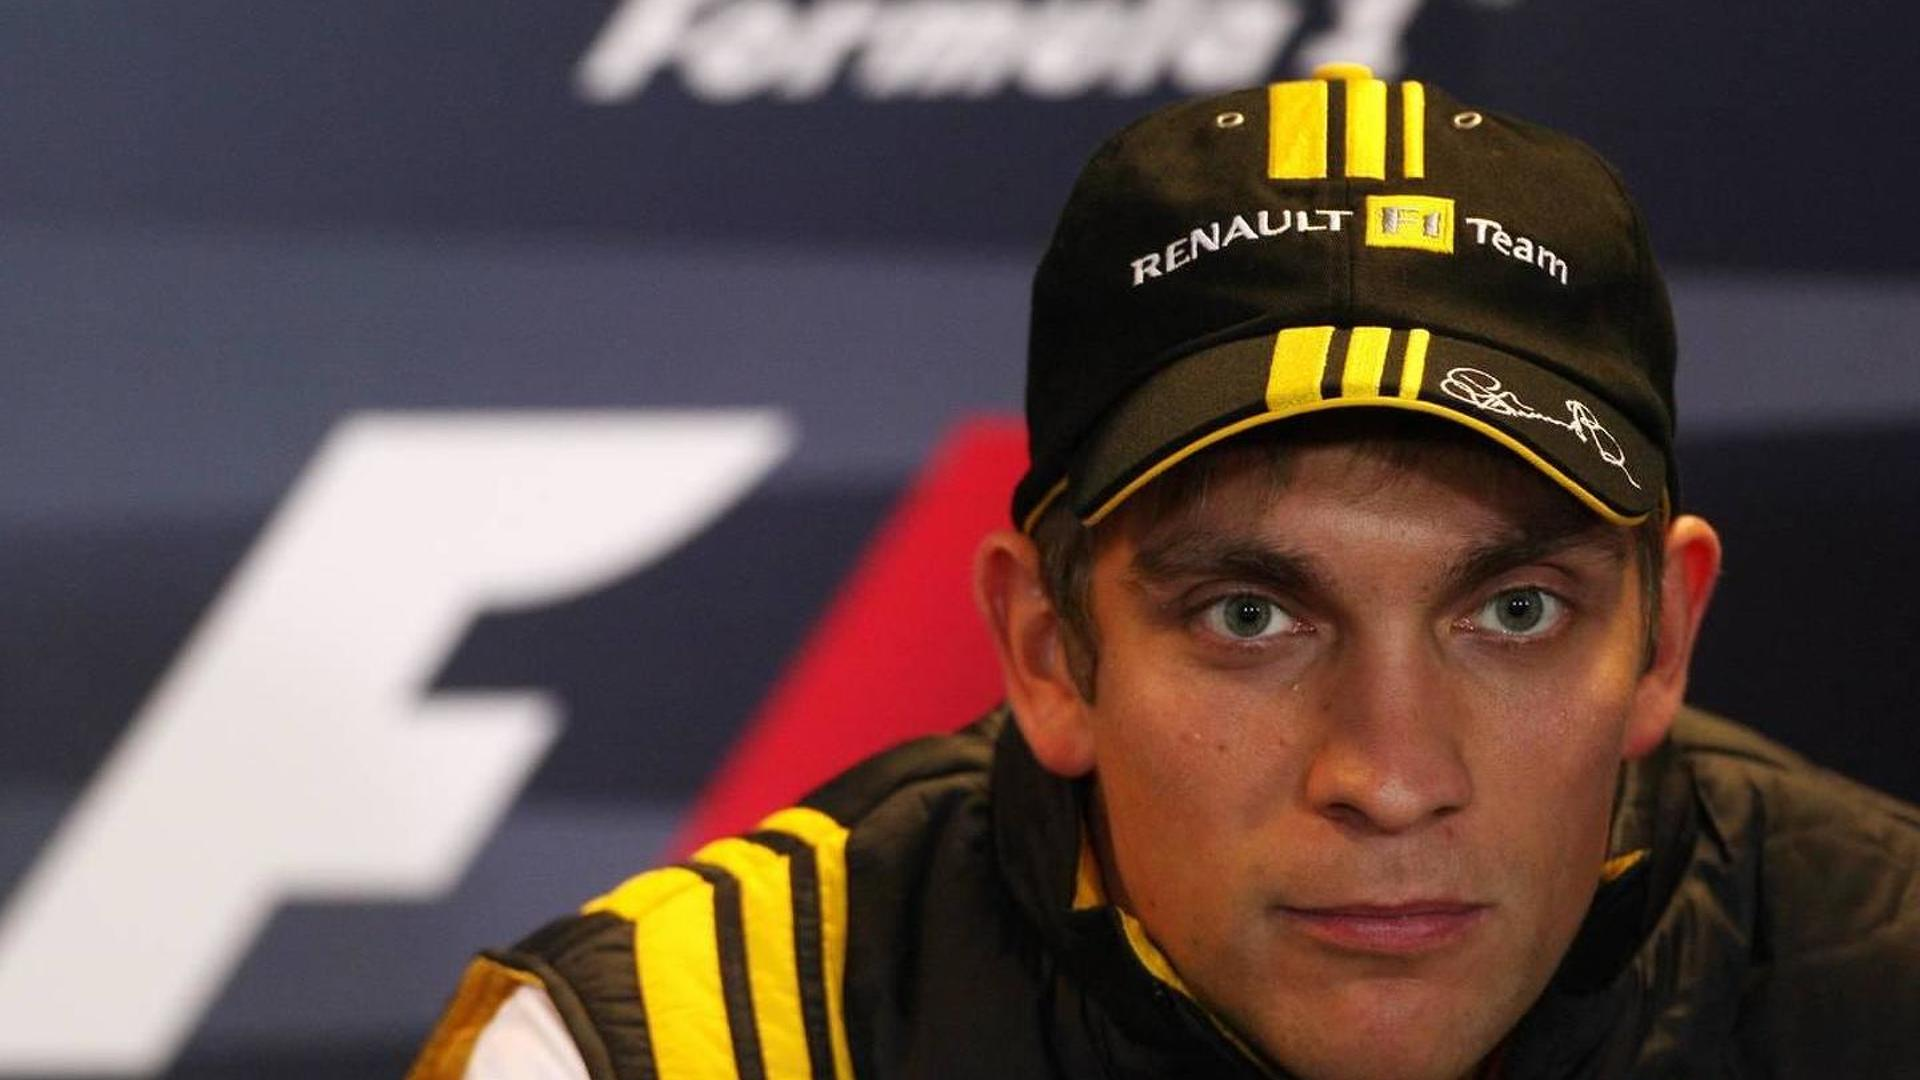 Renault looks set to retain Petrov in 2011